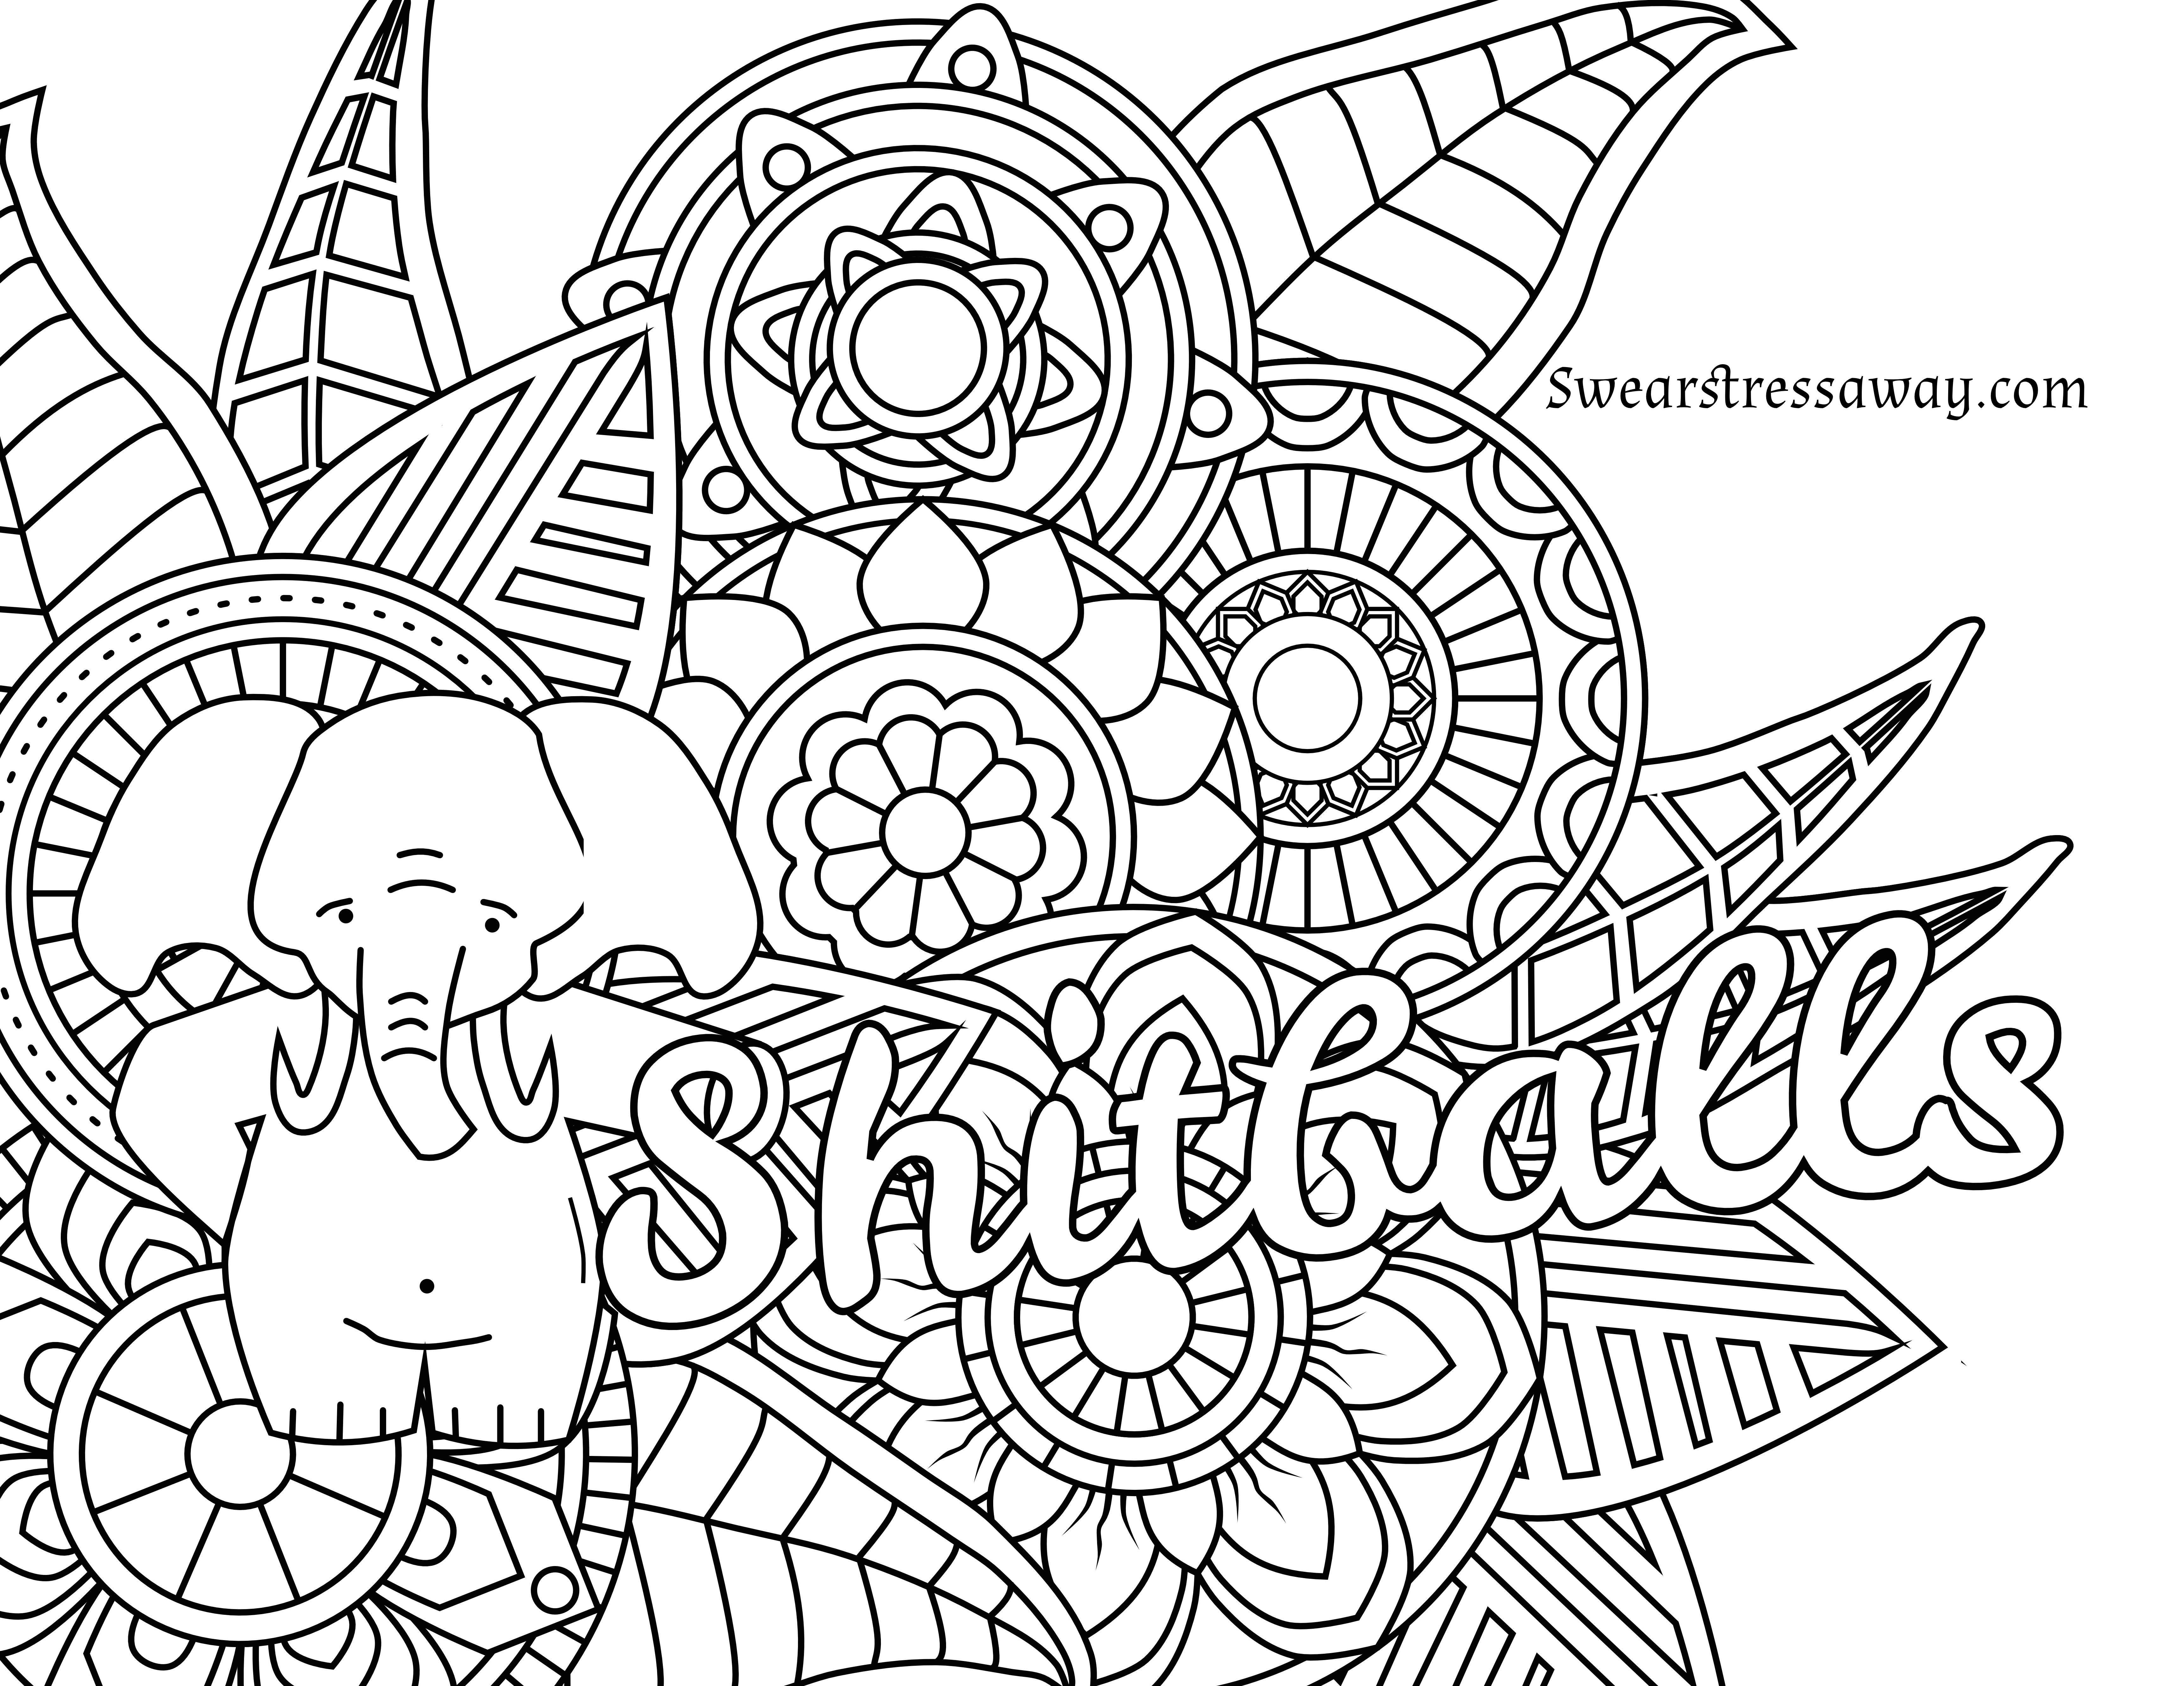 Free Coloring Pages Online Adults  Free Printable Adult Swear Word Coloring Pages Download